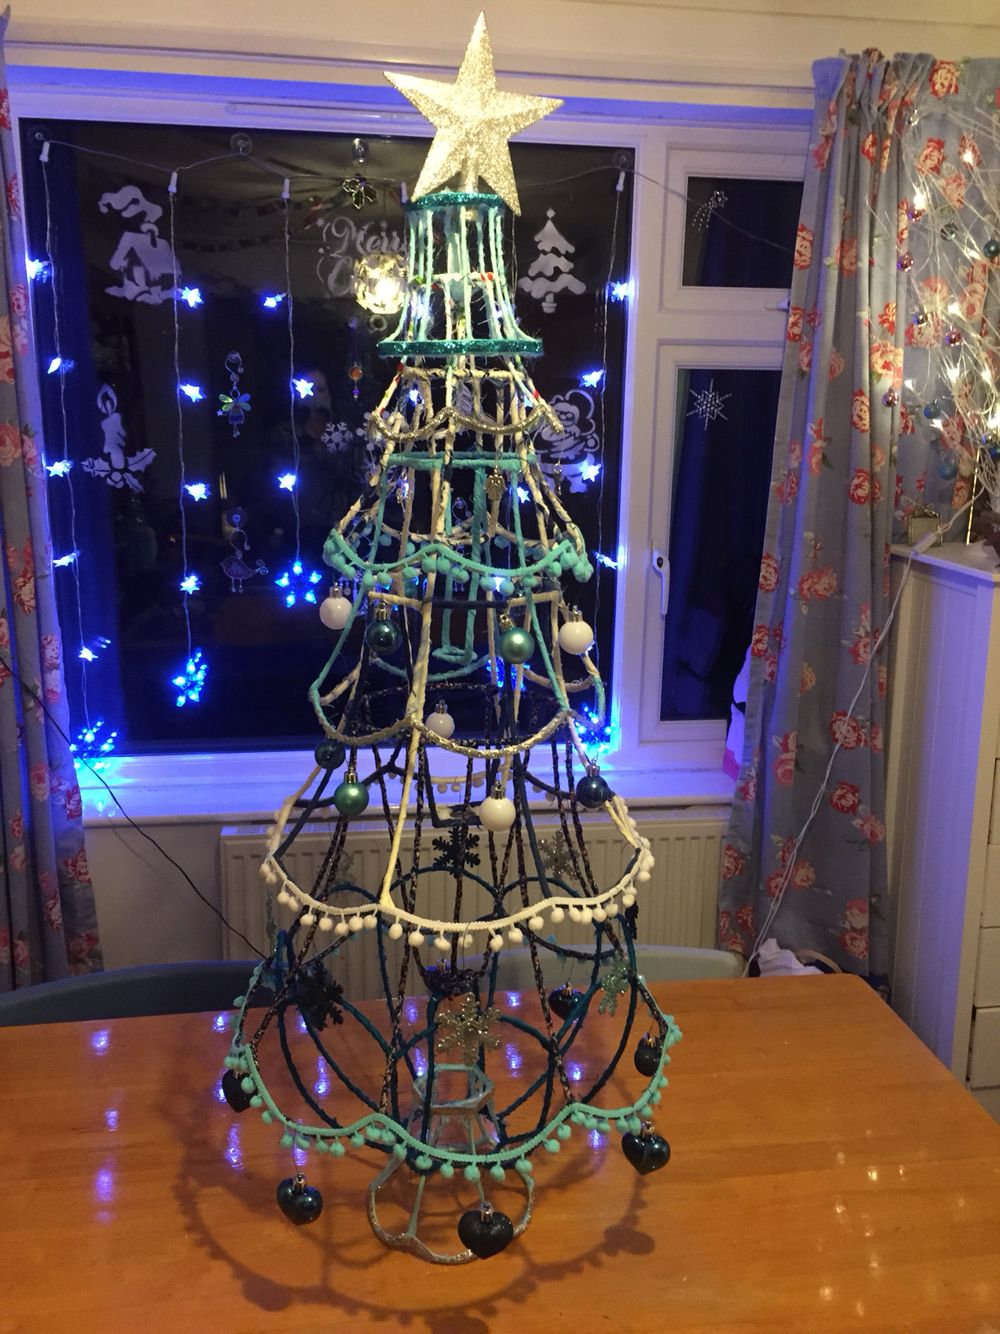 Lampshade Christmas Tree Christmas Crafts Decorations Alternative Christmas Tree Lamp Shade Crafts